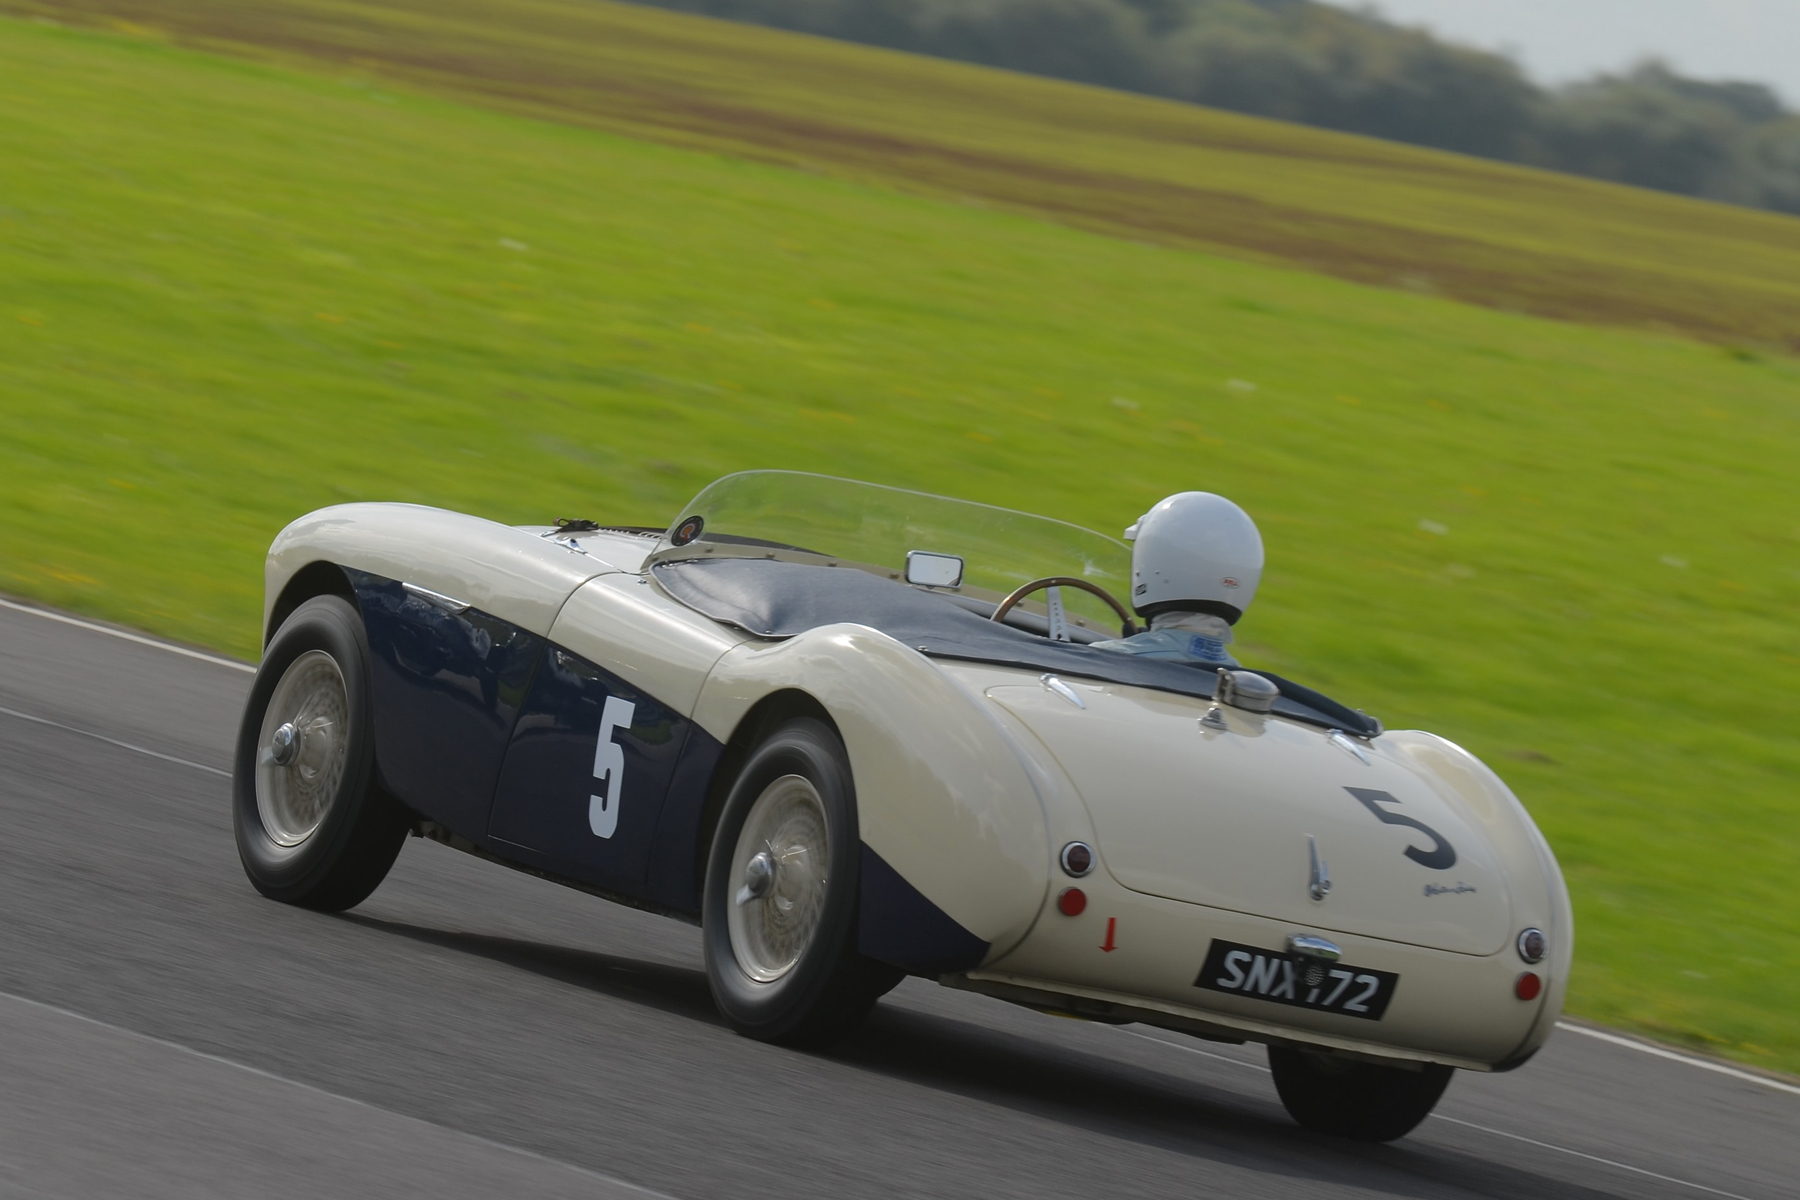 Paul Griffin, first time out in his Austin Healey 100S. He qualified 21st but although improving on his lap time in the race, finished 25th having suffered intermittent ignition 'gremlins'.                    Photo - Ollie Read